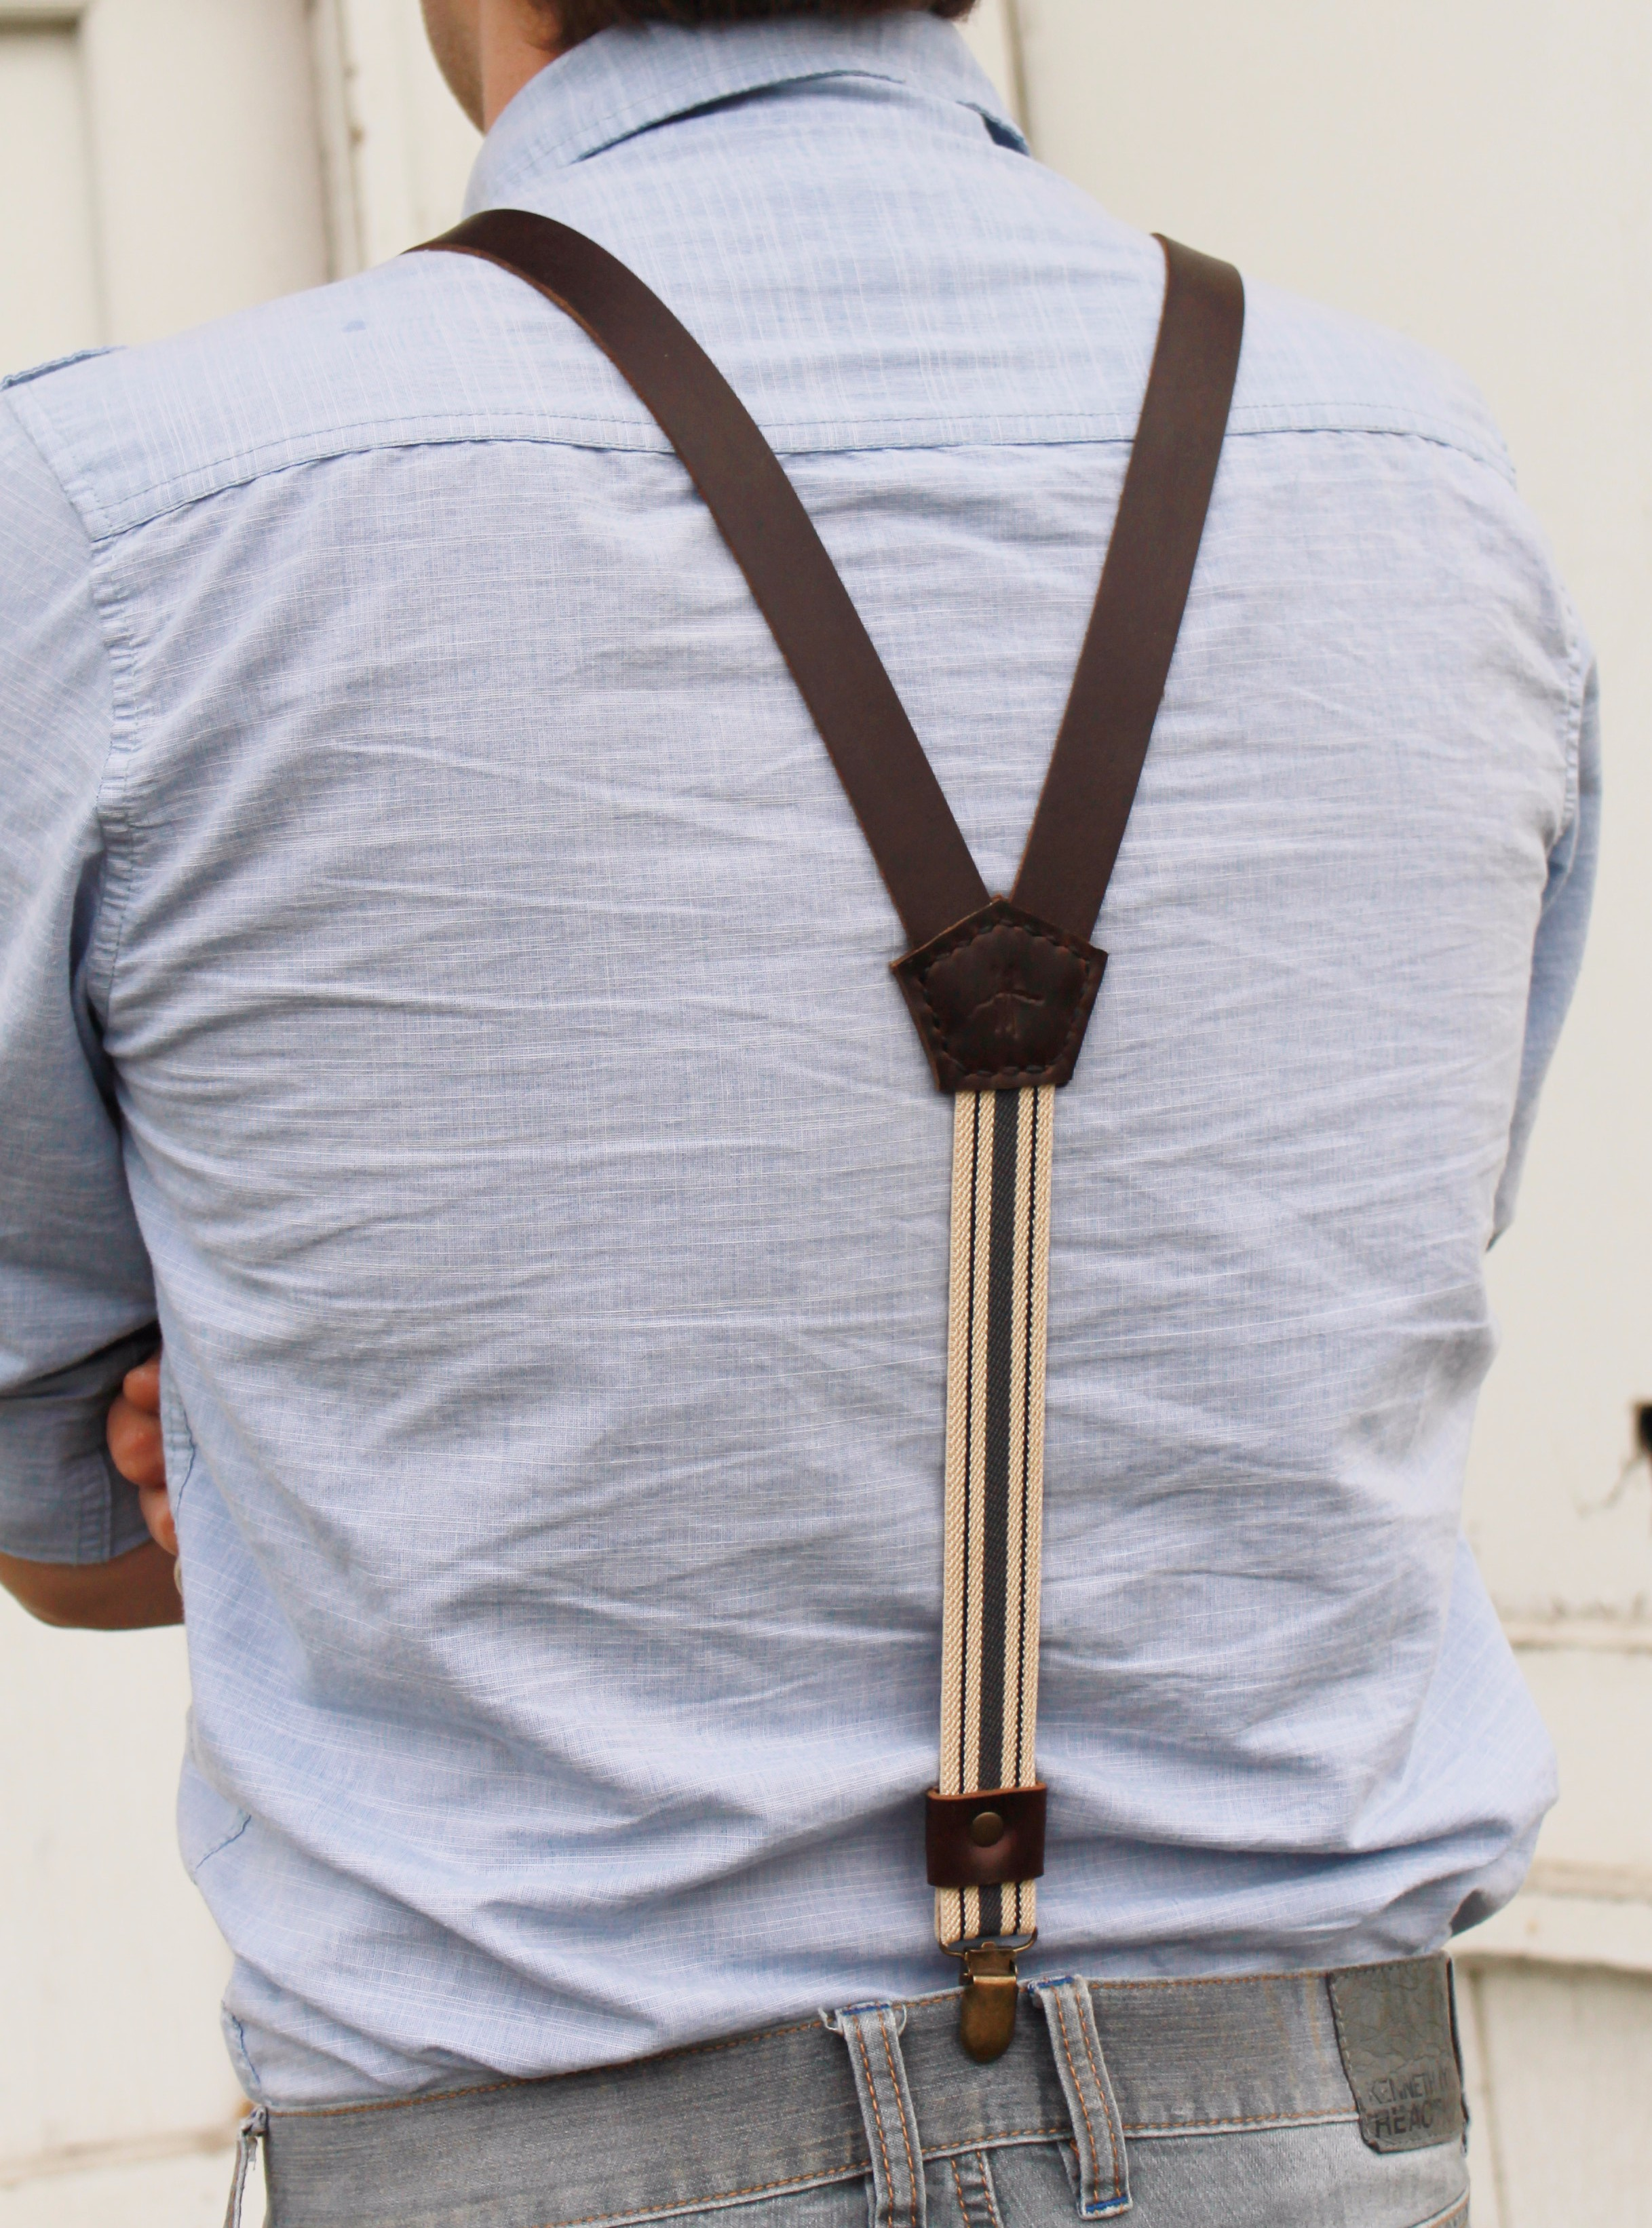 I don't want the yoke angle to be so severe that it causes the front straps to want to spread too much. It's also important to remember that some jeans and pants have the two belt loops in the back while others don't. I can only wear a three strap suspender with this type of jean.